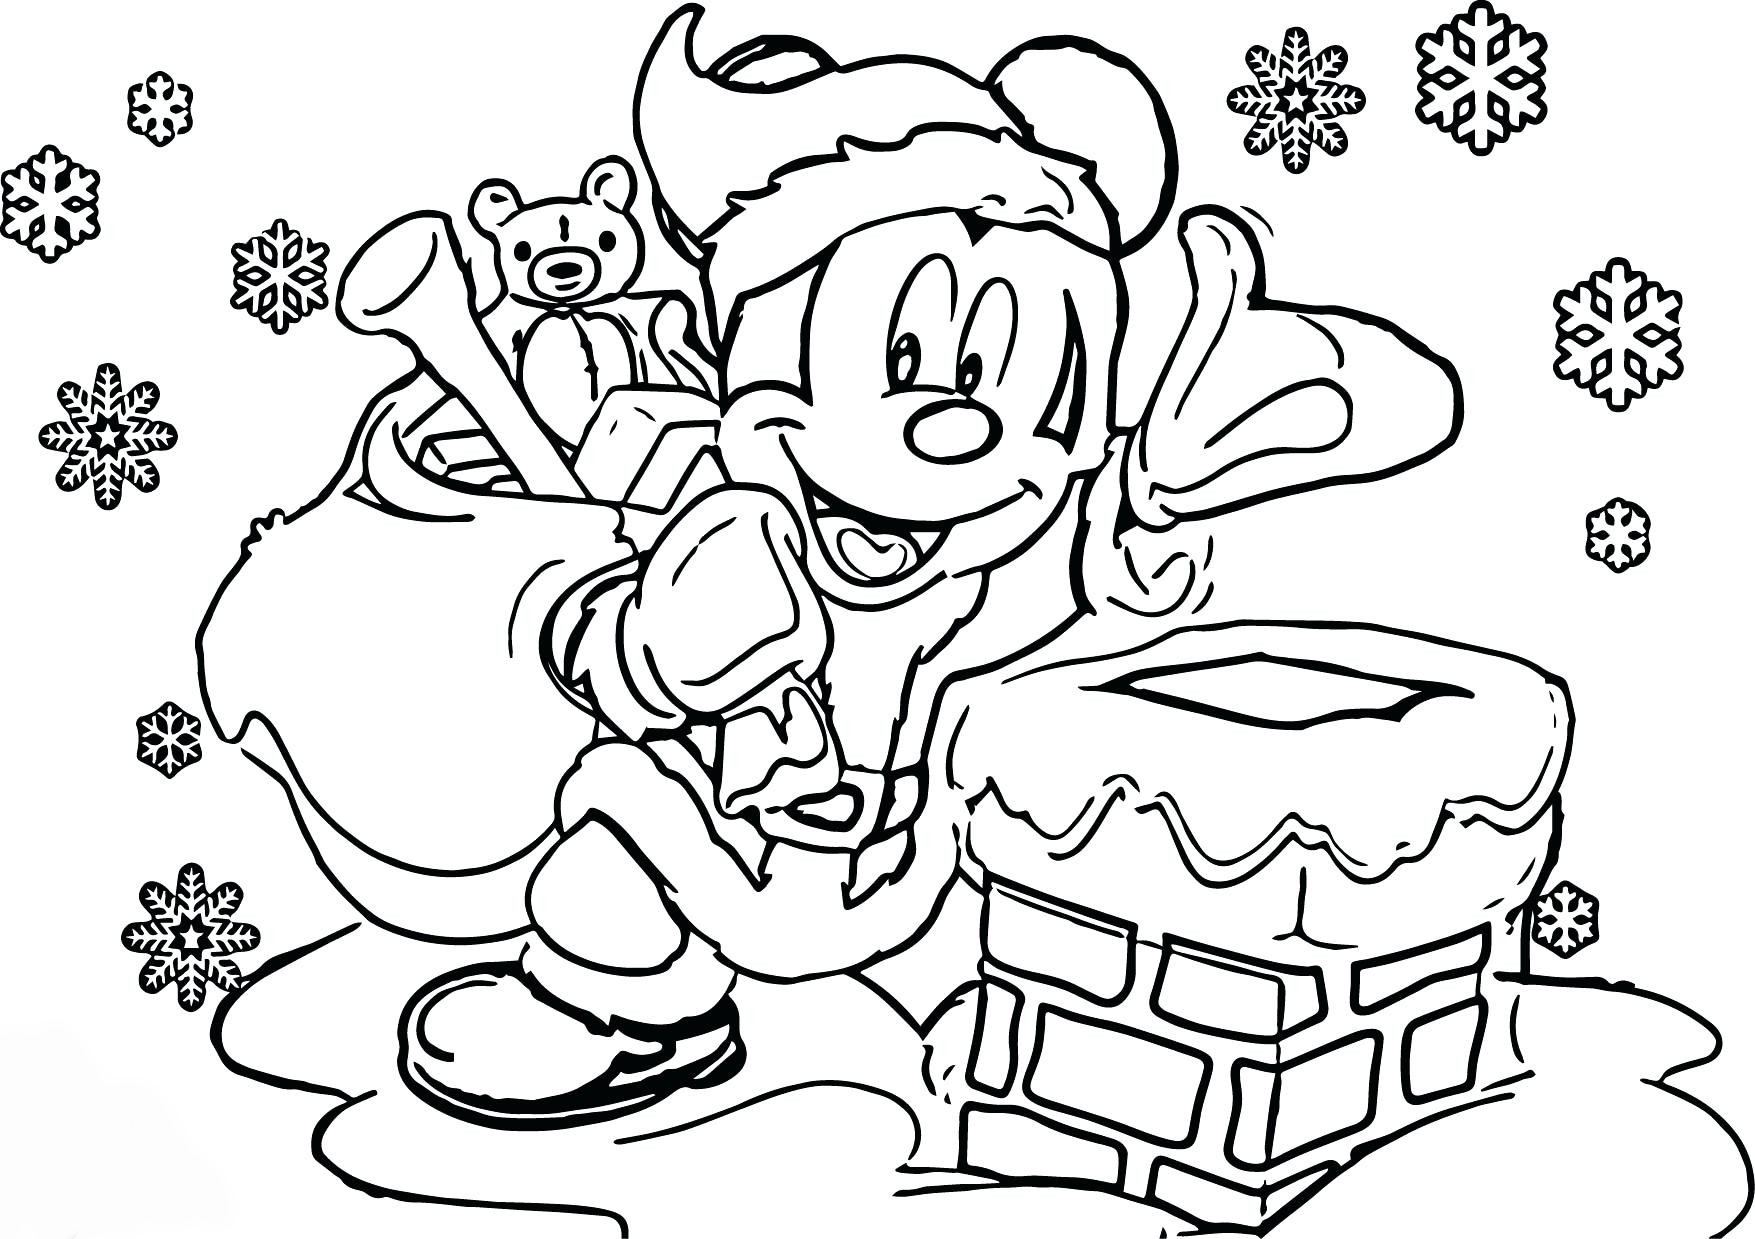 coloring pages christams - photo#19